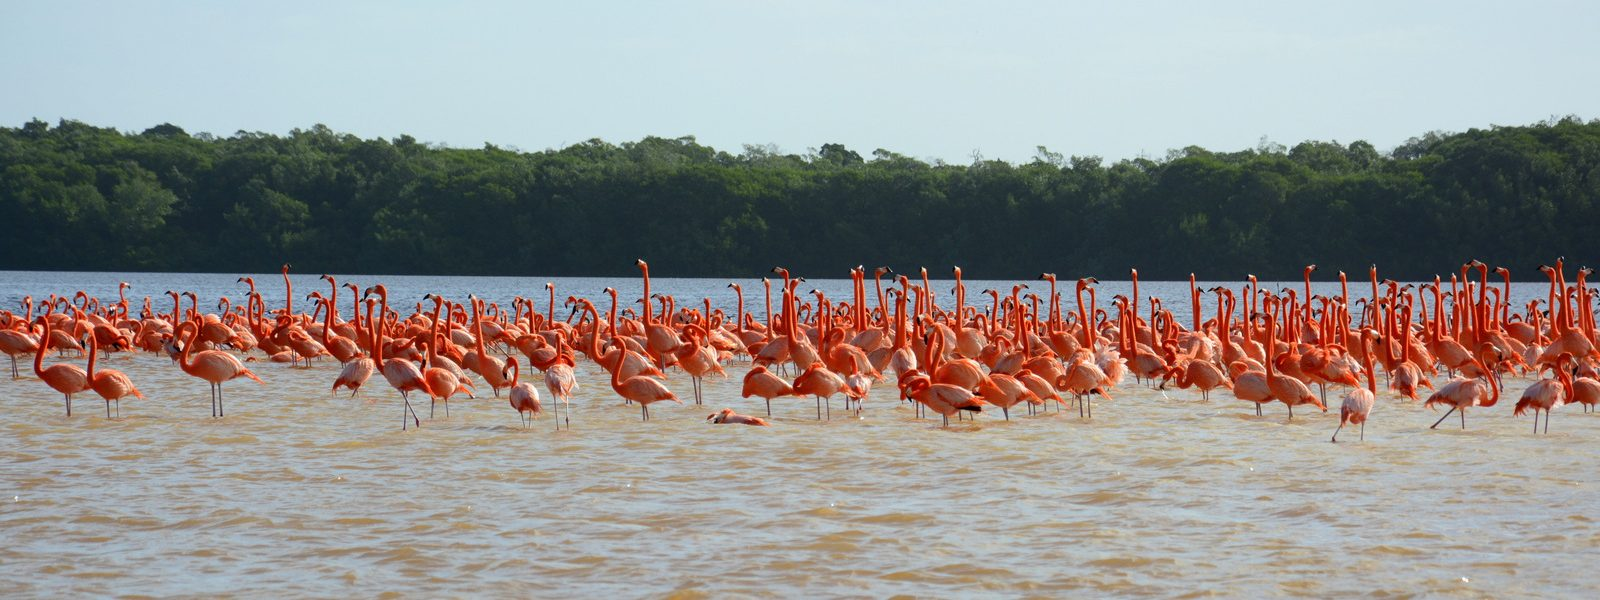 Where are flamingos?